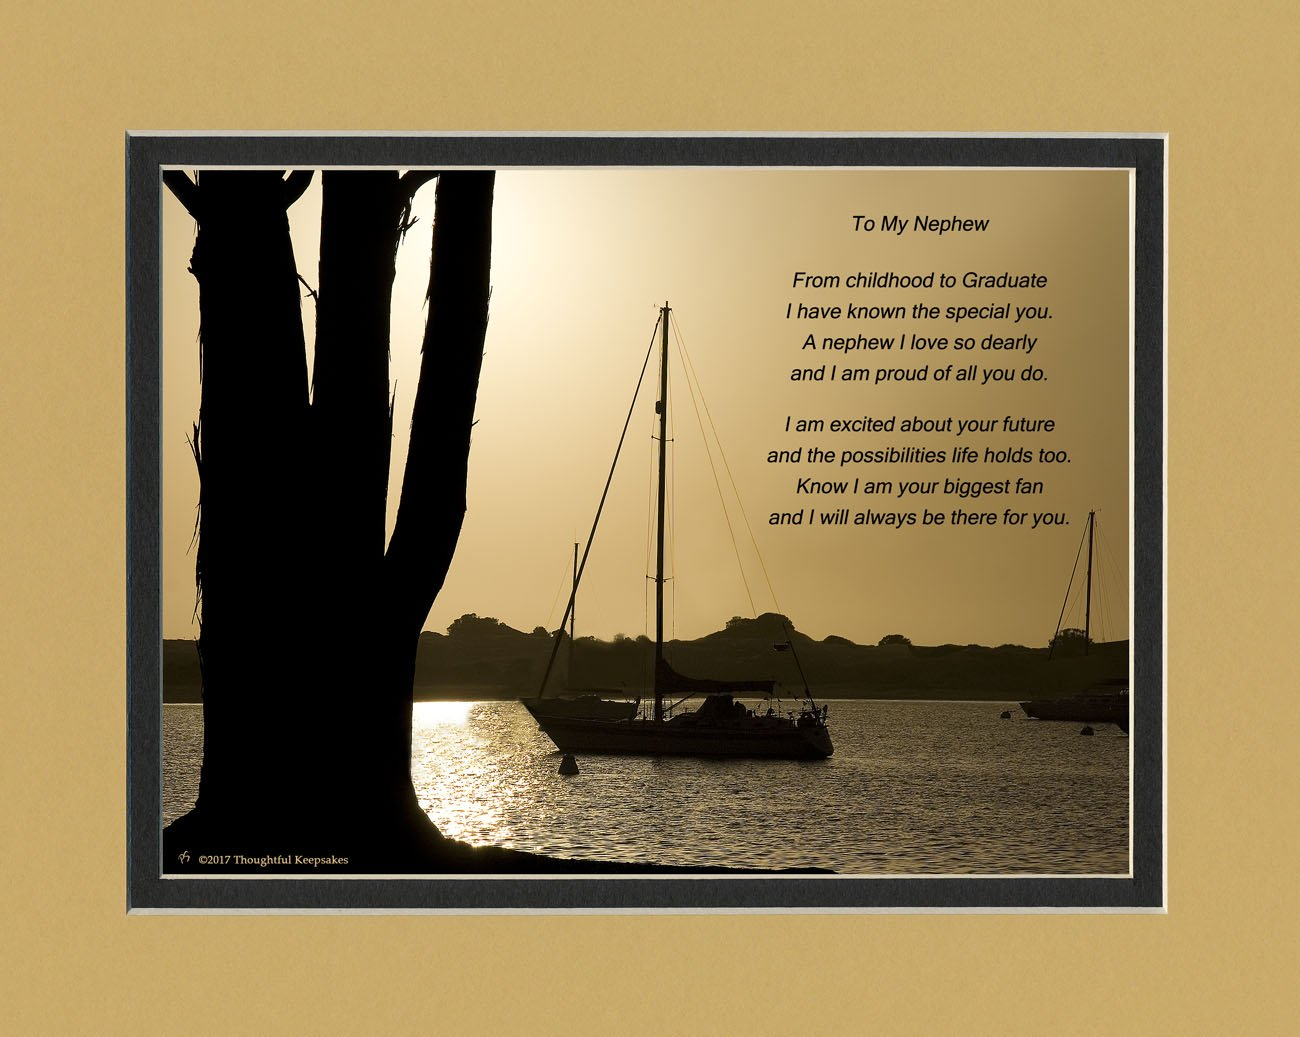 Graduation Gifts Nephew, Boats at Dusk Photo with From Childhood to Graduate Poem, 8x10 Double Matted. Special Keepsake for Nephew, Unique College and High School Grad Gifts.